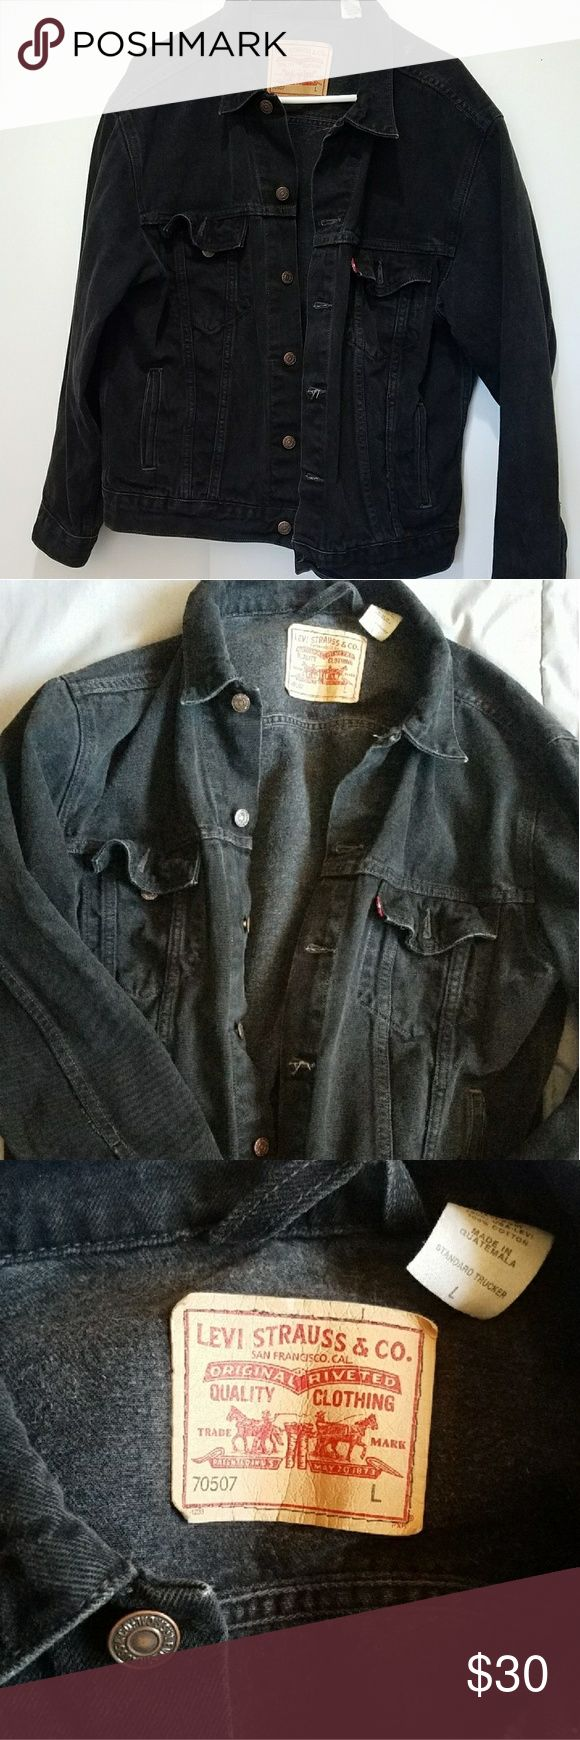 Black levis denim jacket Slightly worn and distressed men's denim Levis denim jacket. Mens size large but also a women's large or a slightly oversized medium. Distressing looks intentional. Levi's Jackets & Coats Jean Jackets